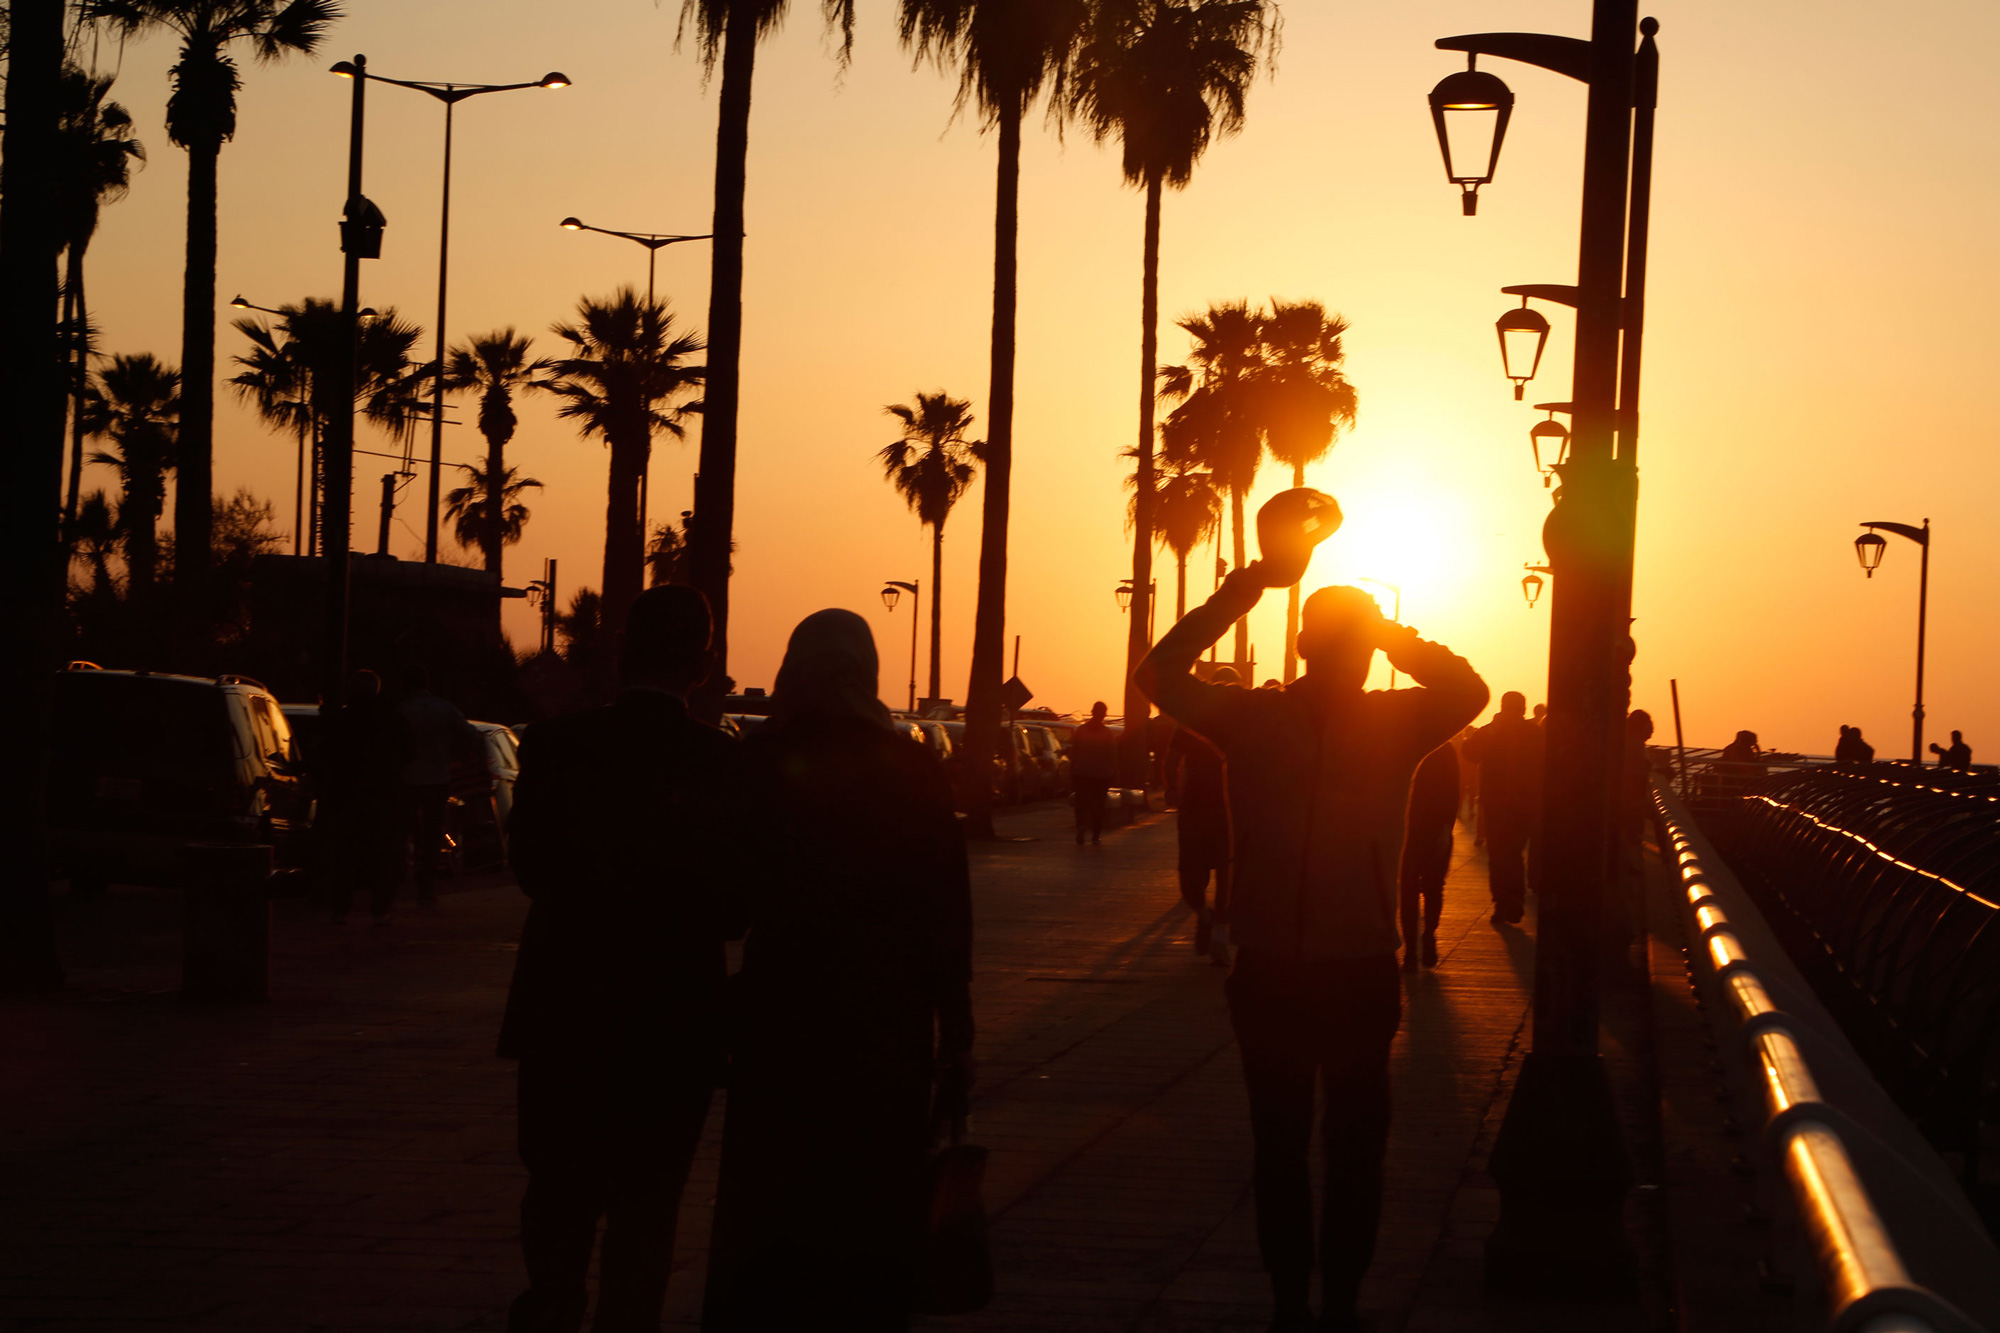 People walk along the corniche at sunset.